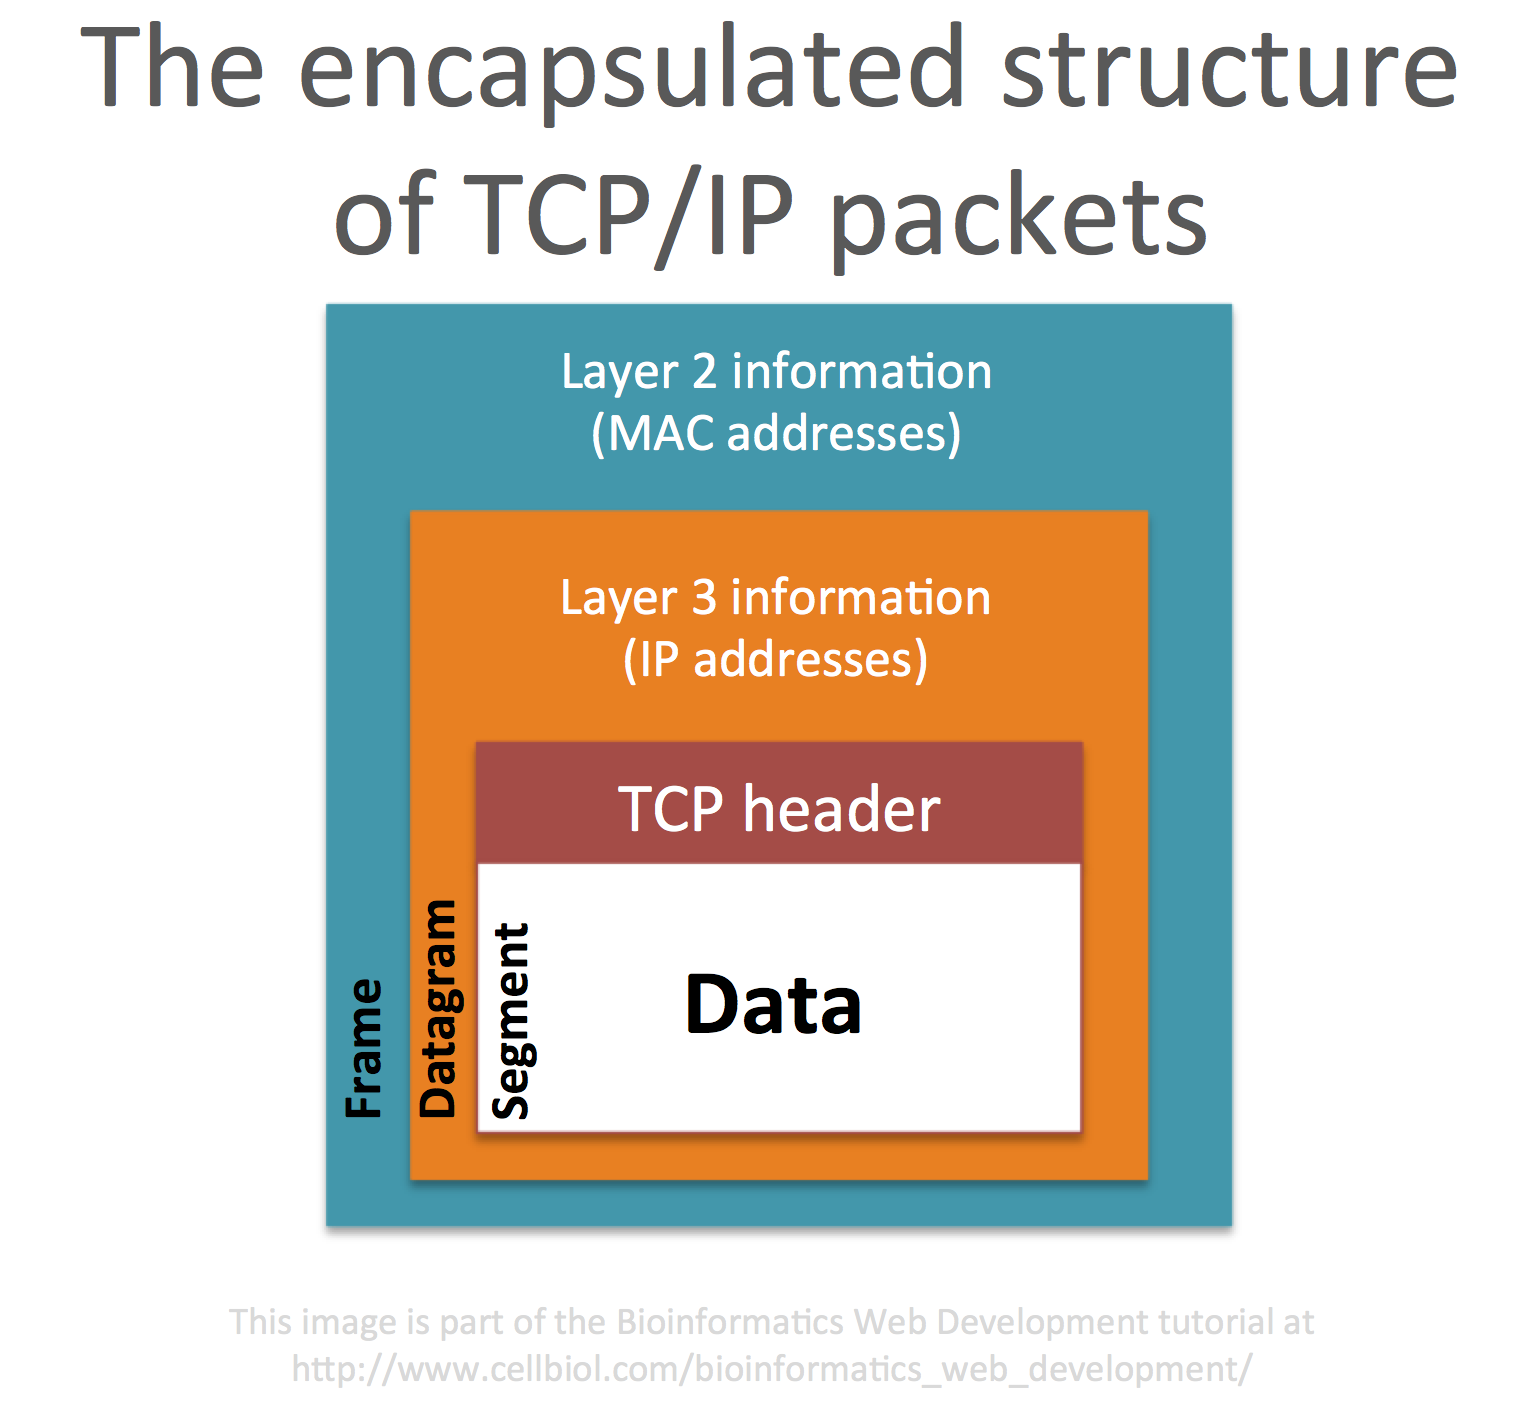 The encapsulated structure of TCP/IP packets. In OSI layer 4 data is fragmented into segments. In OSI layer 3 each segment is encapsulated in a datagram with information on source and destination IP. In OSI layer 2 the packet is further encapsulated in a frame that contains the source and destination MAC addresses. If the destination of the packet resides outside of the local network, the destination MAC address is the one of the gateway (the router).